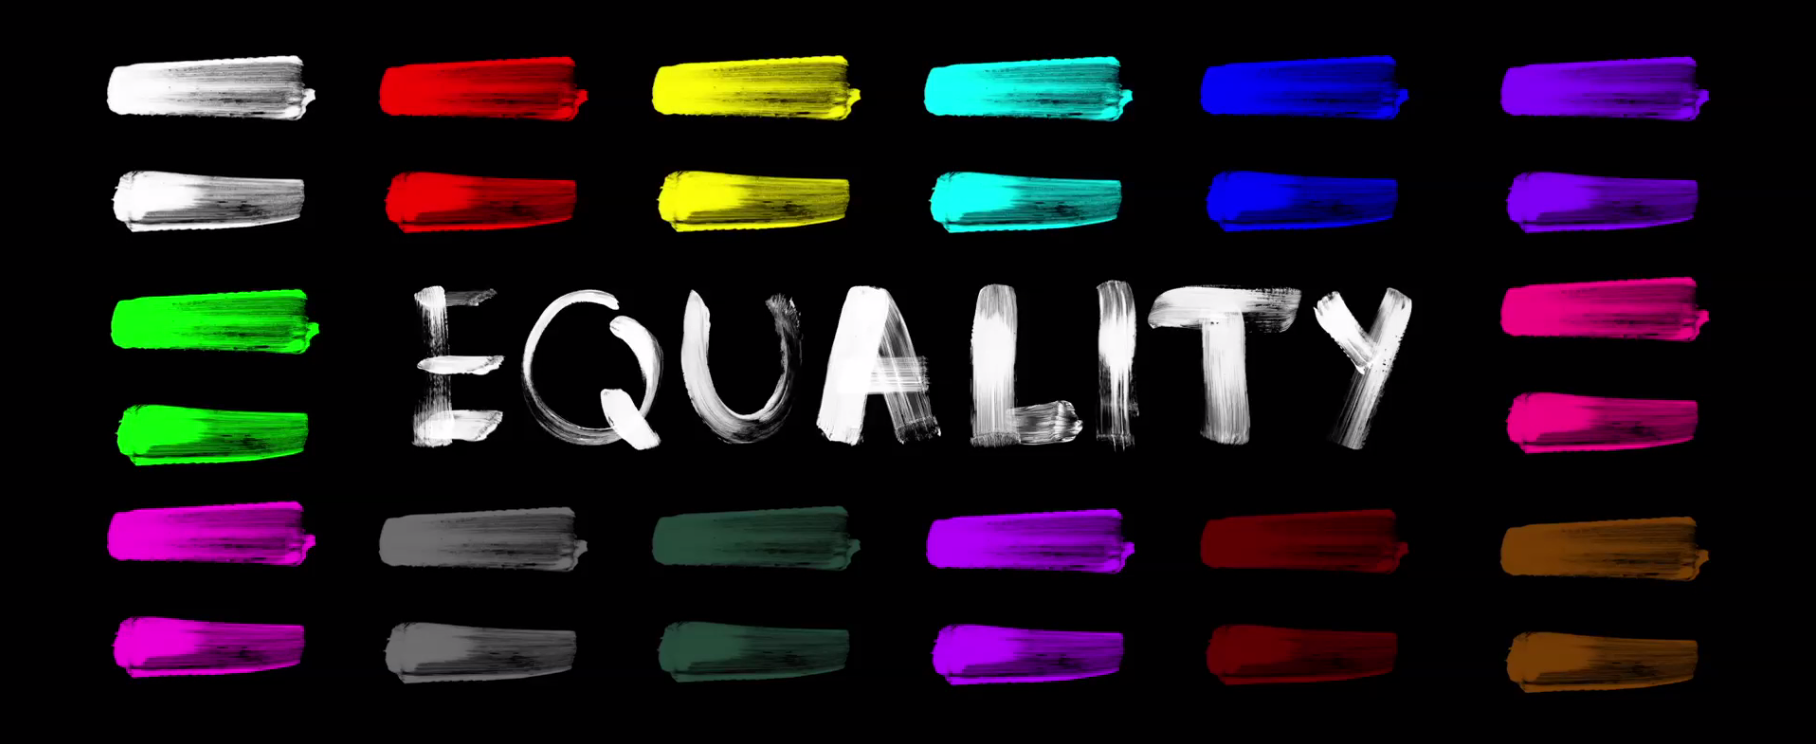 - Equality Wines are produced in annual limited releases of 200 cases, available online and in their Guerneville (Sonoma County, CA) tasting room, scheduled to open June 26, 2017, on the second anniversary of the Supreme Court's marriage equality decision.